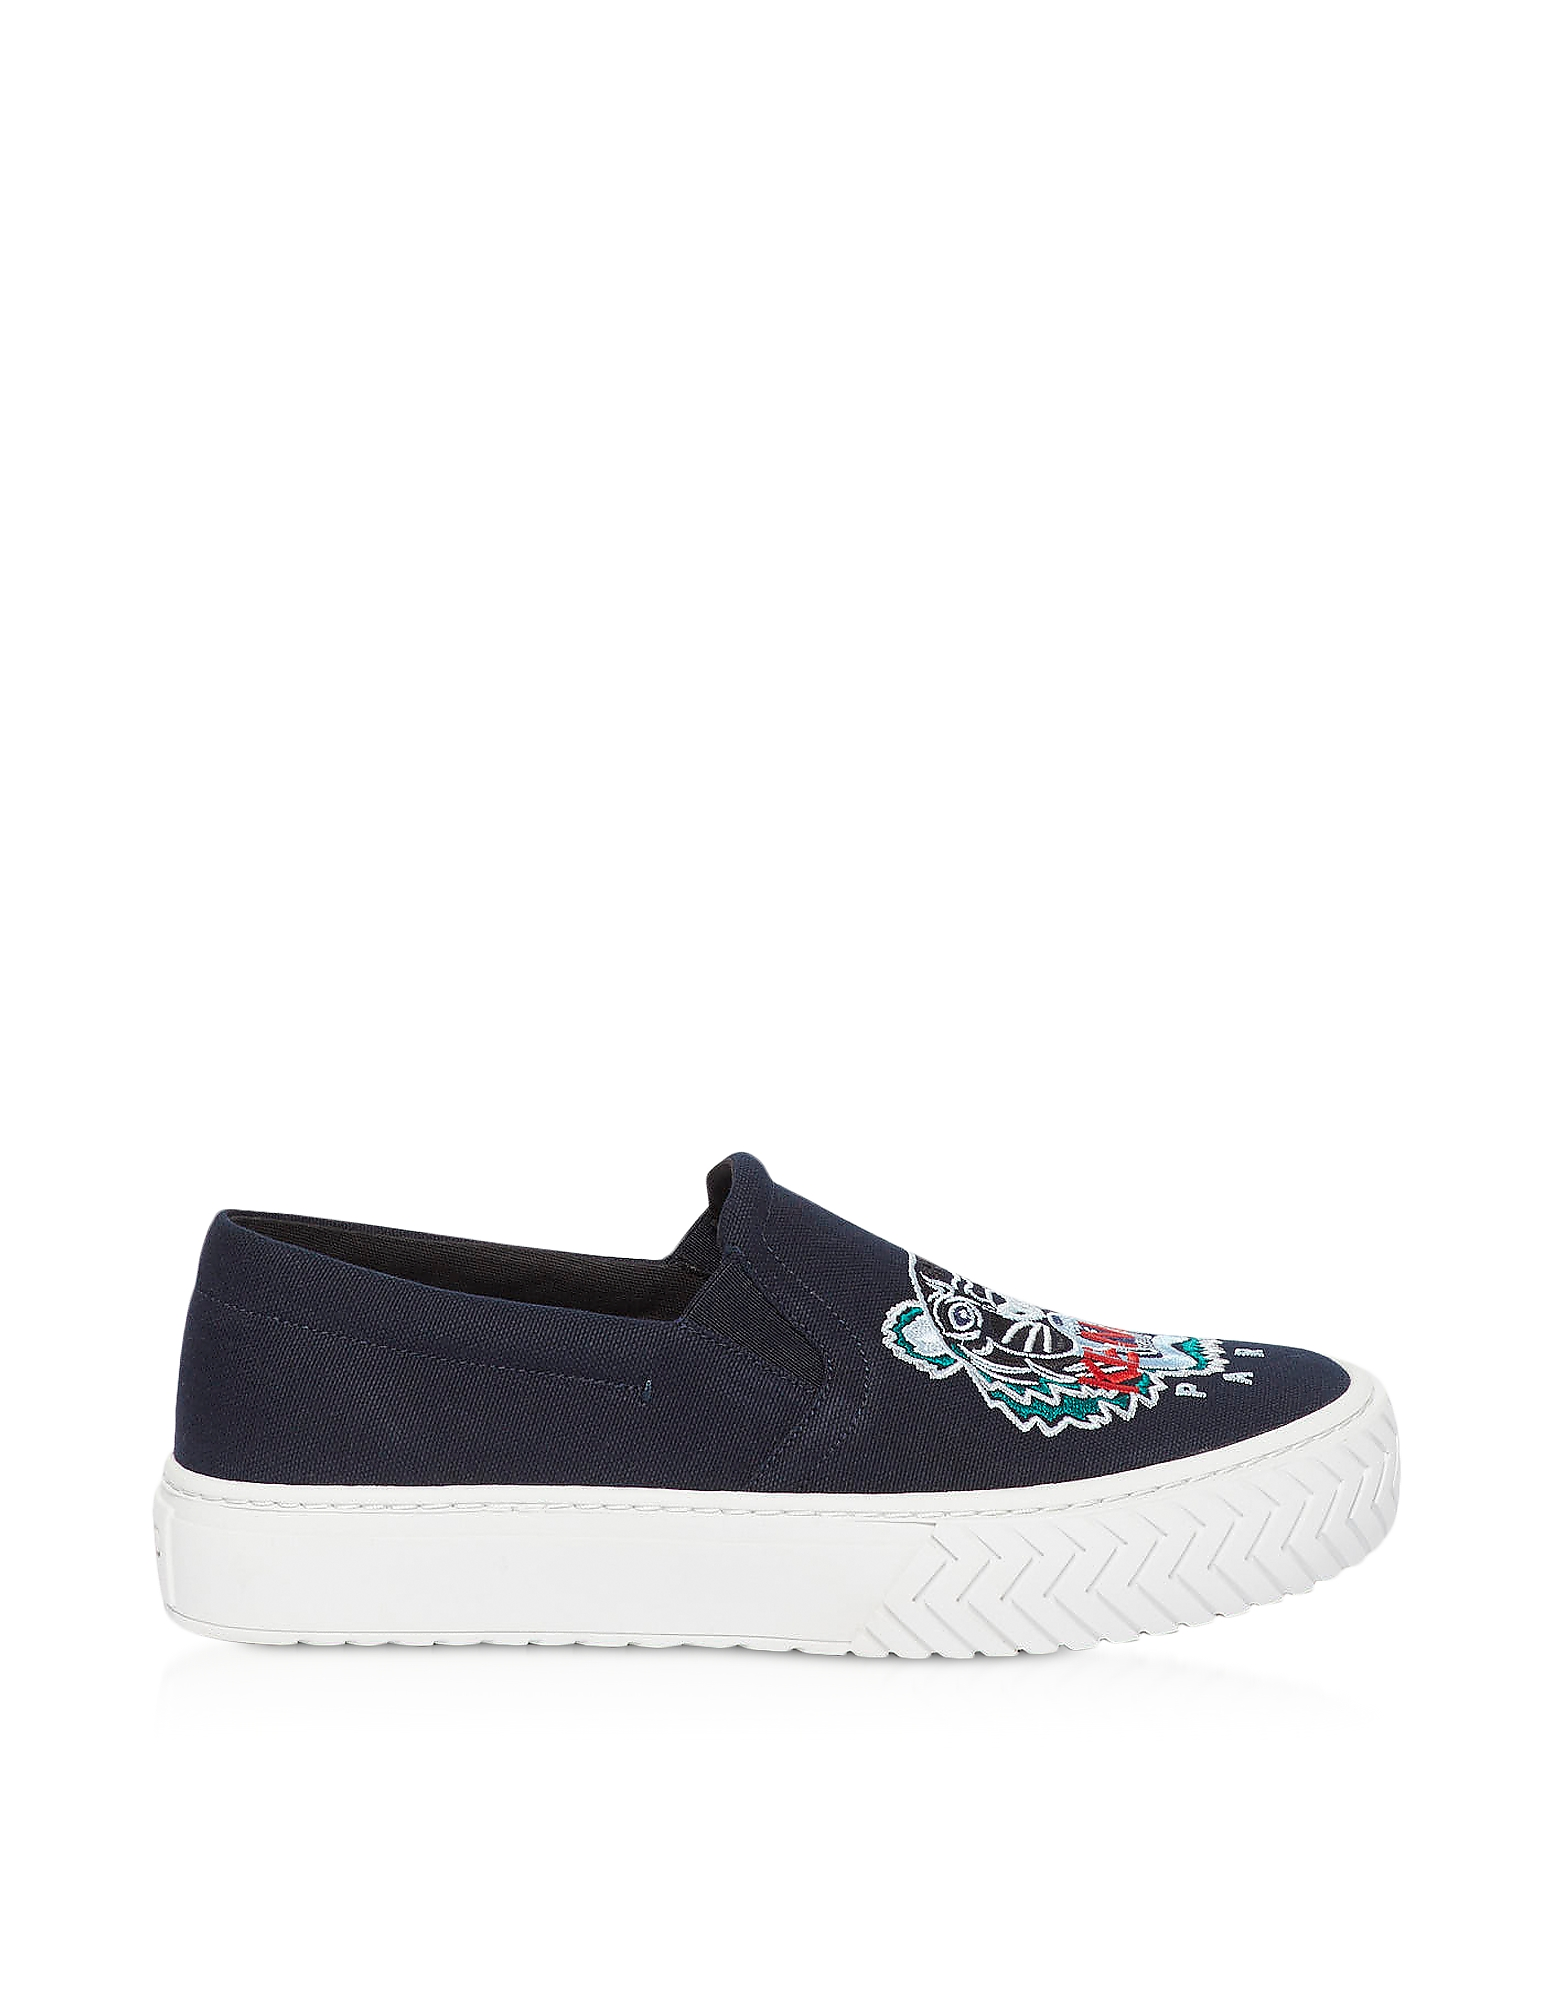 Kenzo Sneakers CANVAS TIGER HEAD EMBROIDERY SNEAKERS